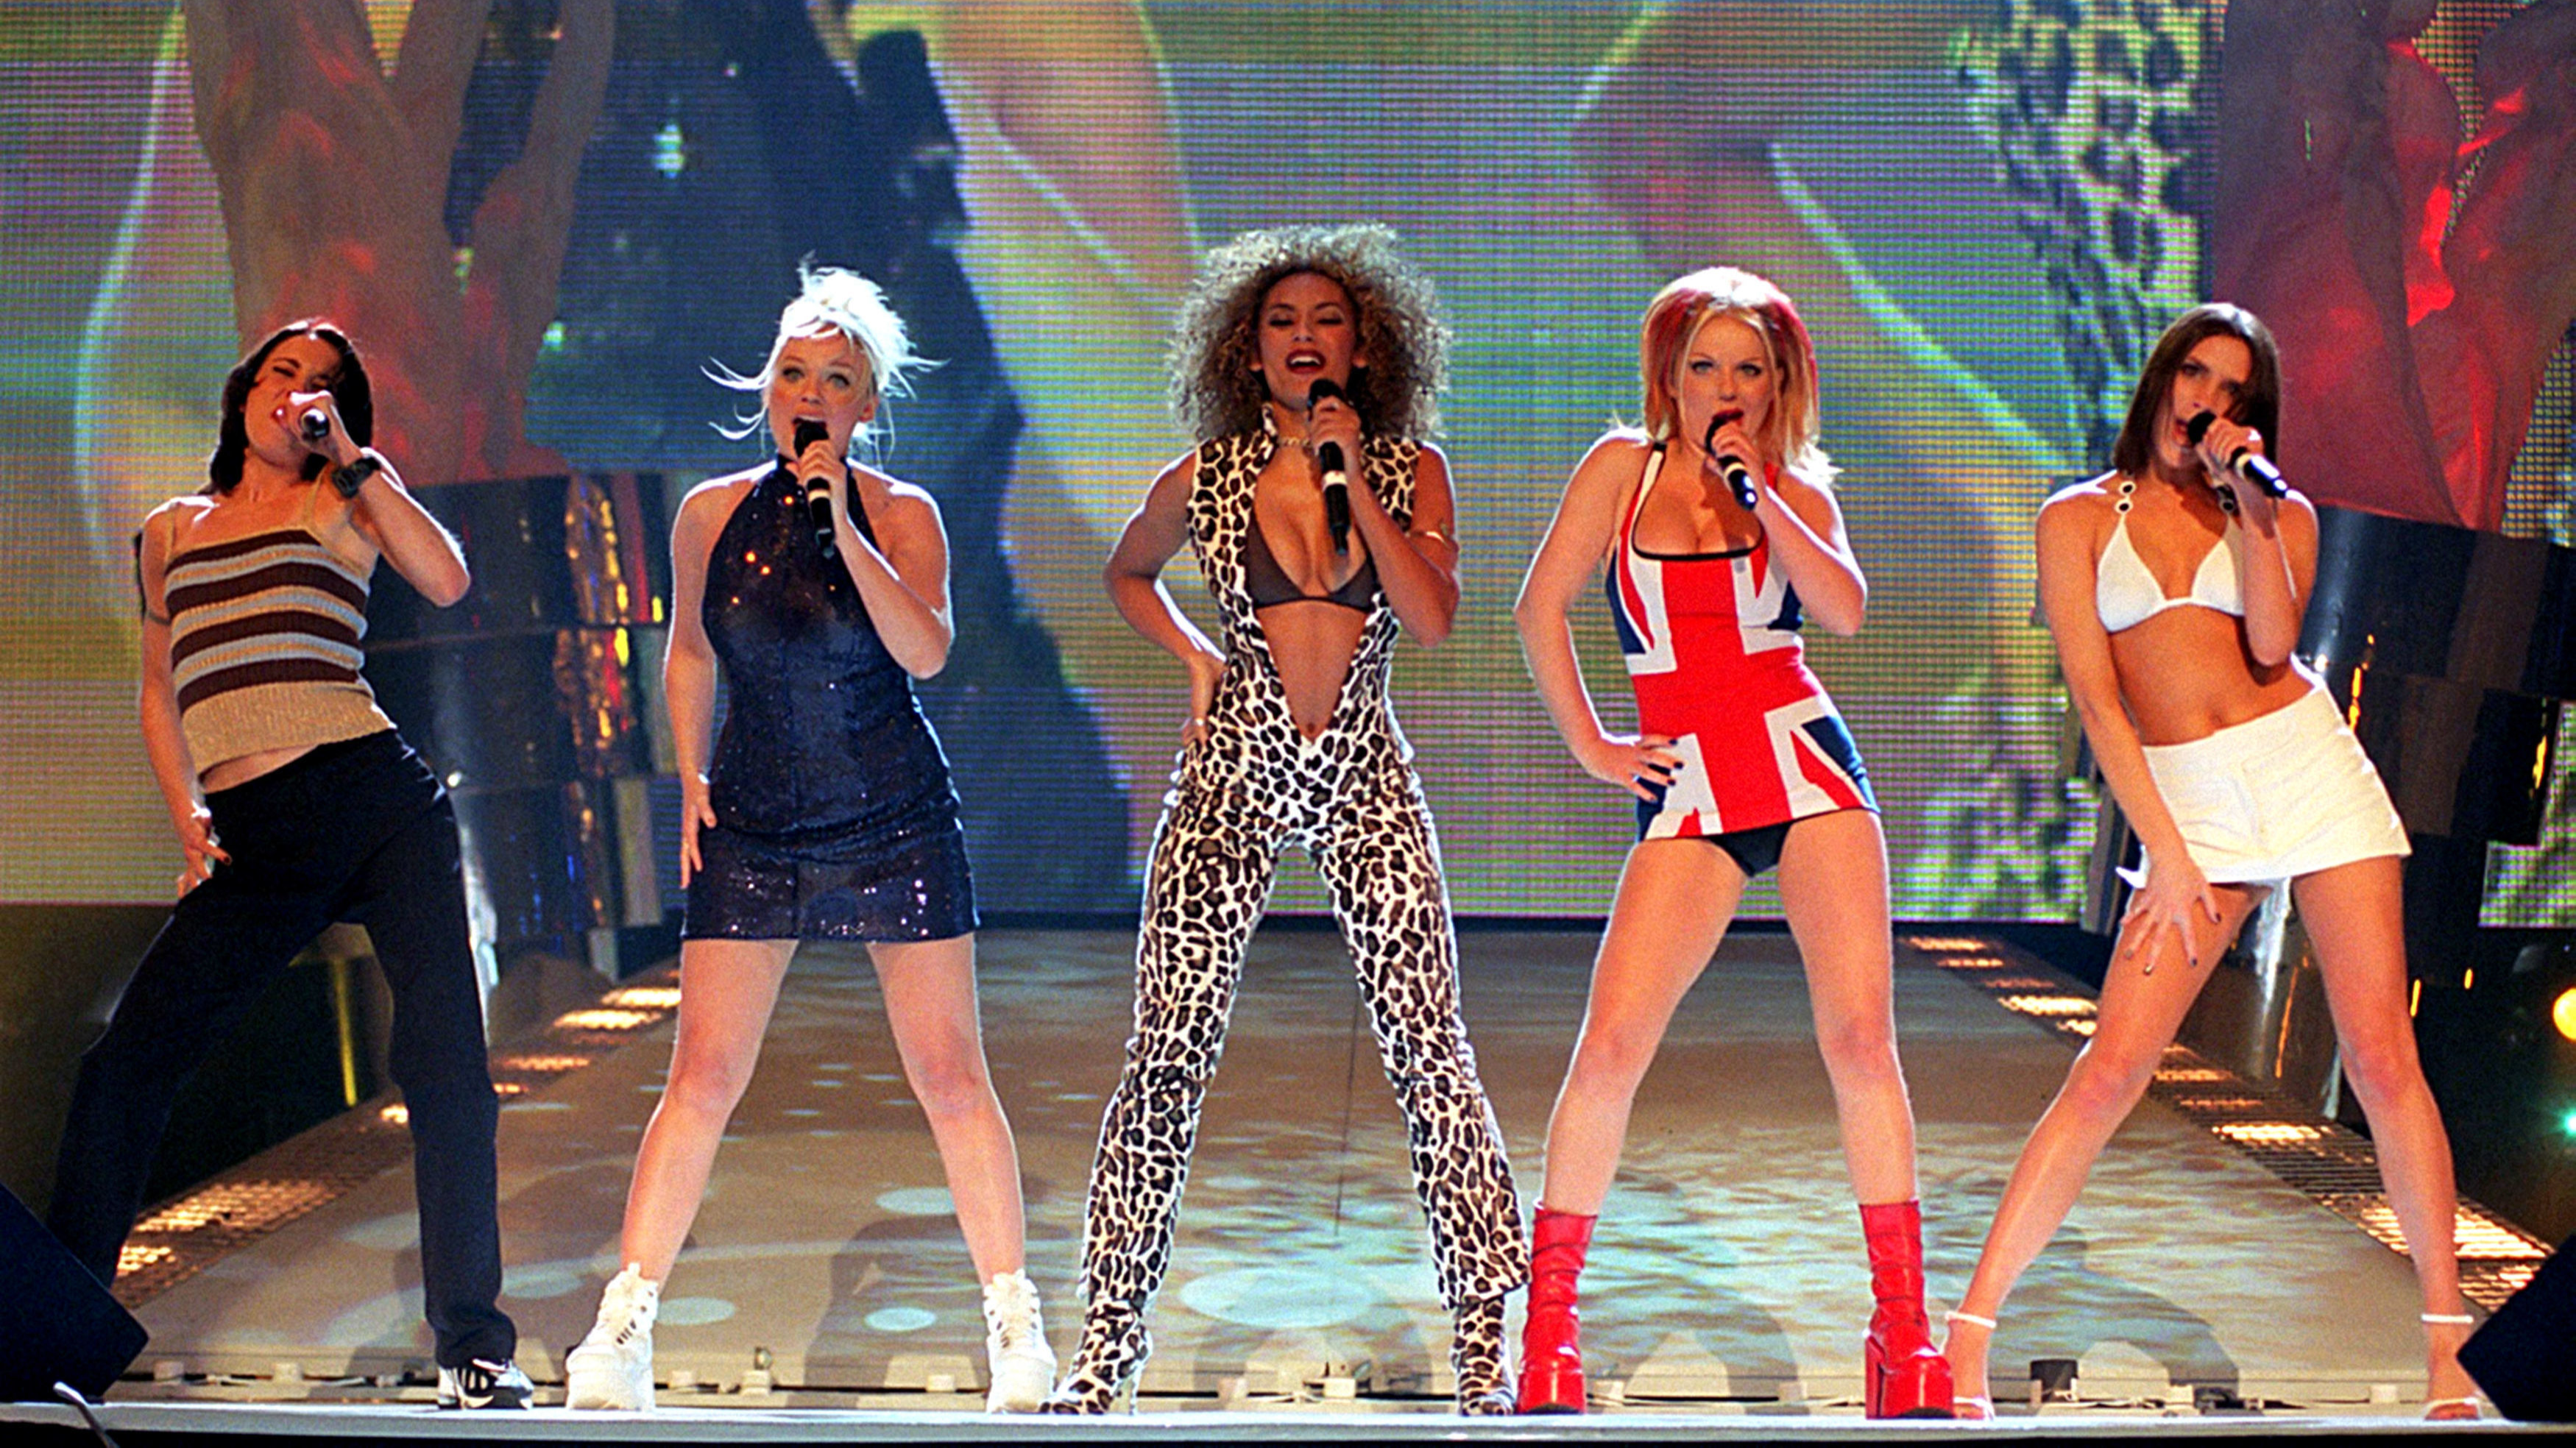 Spice Girls Are Auditioning For Dancers For Their Latest Tour